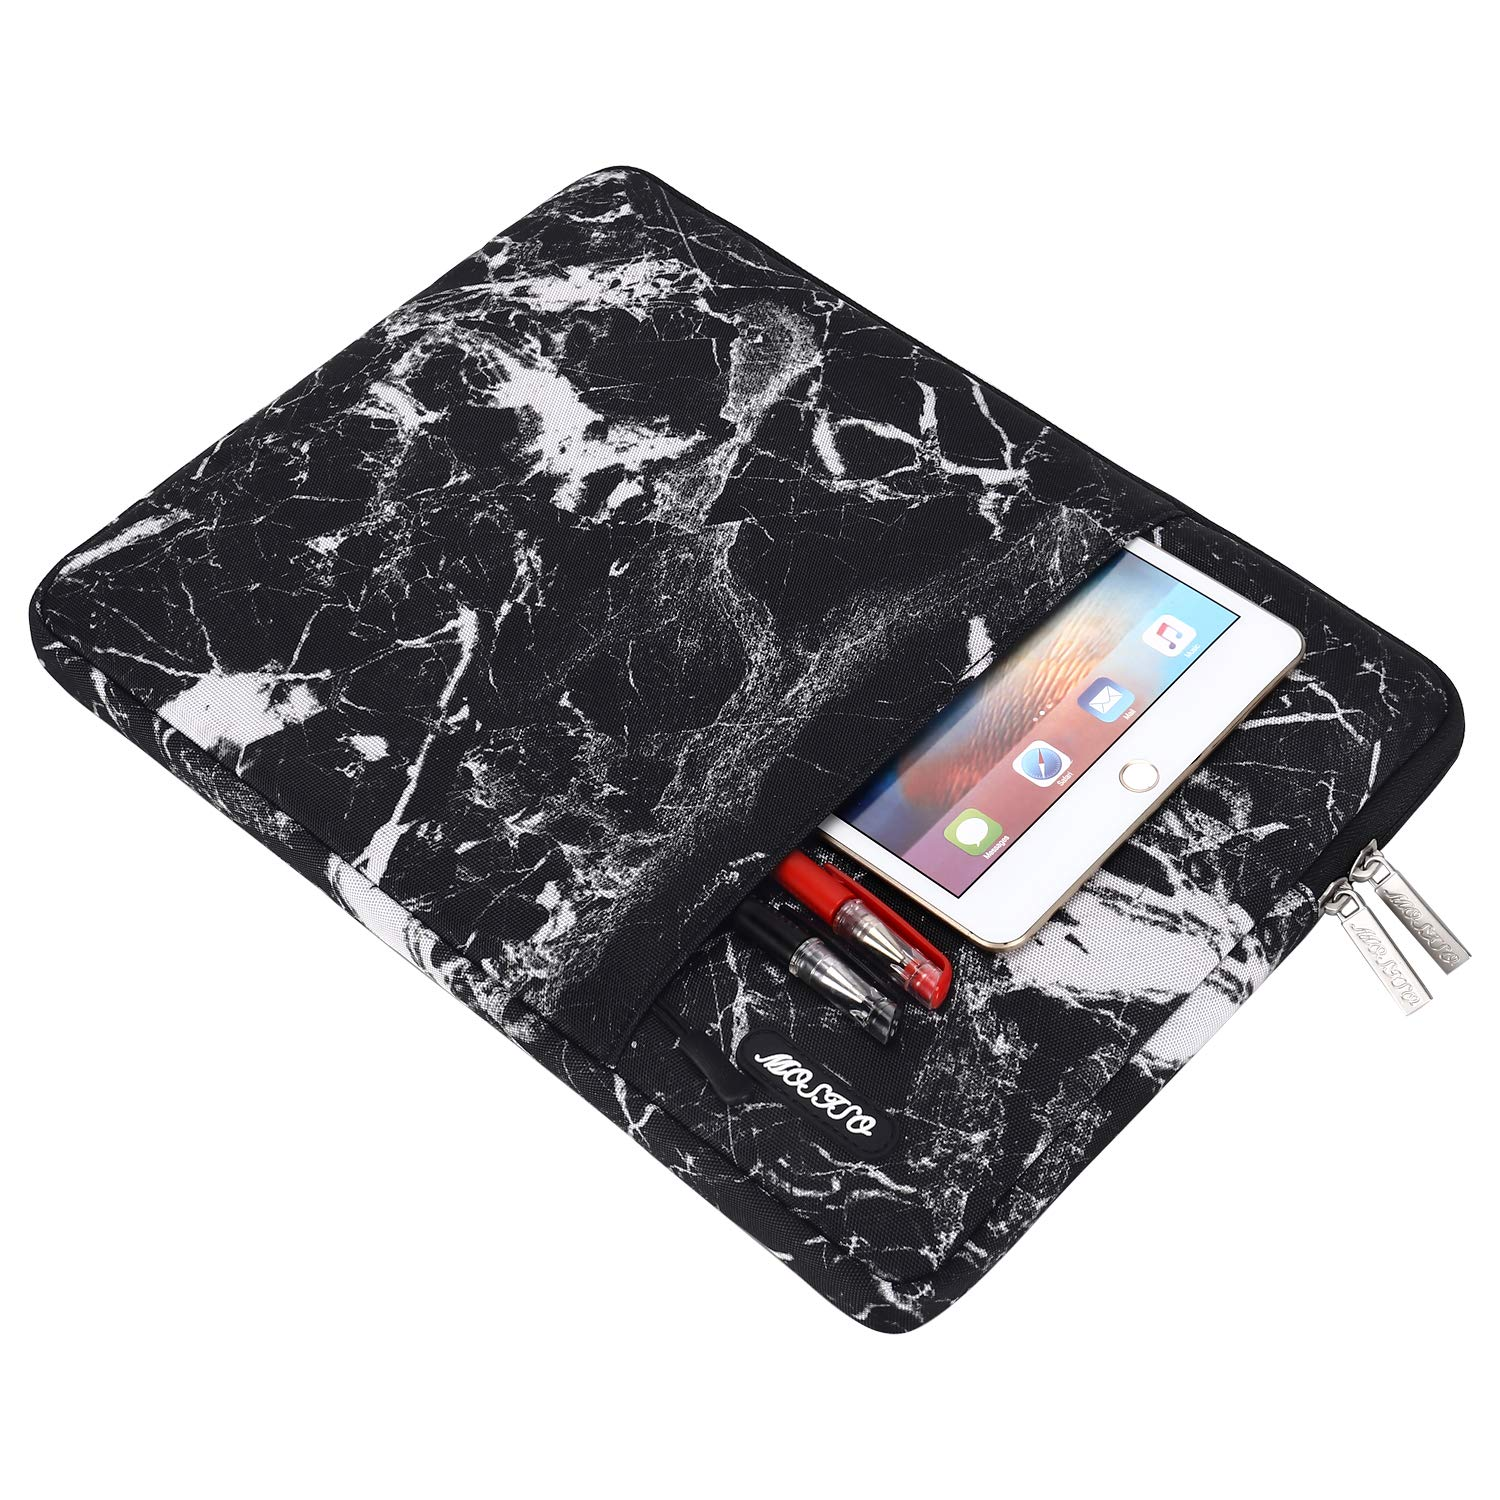 MOSISO Laptop Sleeve Bag Compatible 13-13.3 Inch MacBook Pro, MacBook Air, Notebook Computer, Vertical Style Water Repellent Polyester Protective Case Cover with Pocket, Black Marble by MOSISO (Image #5)